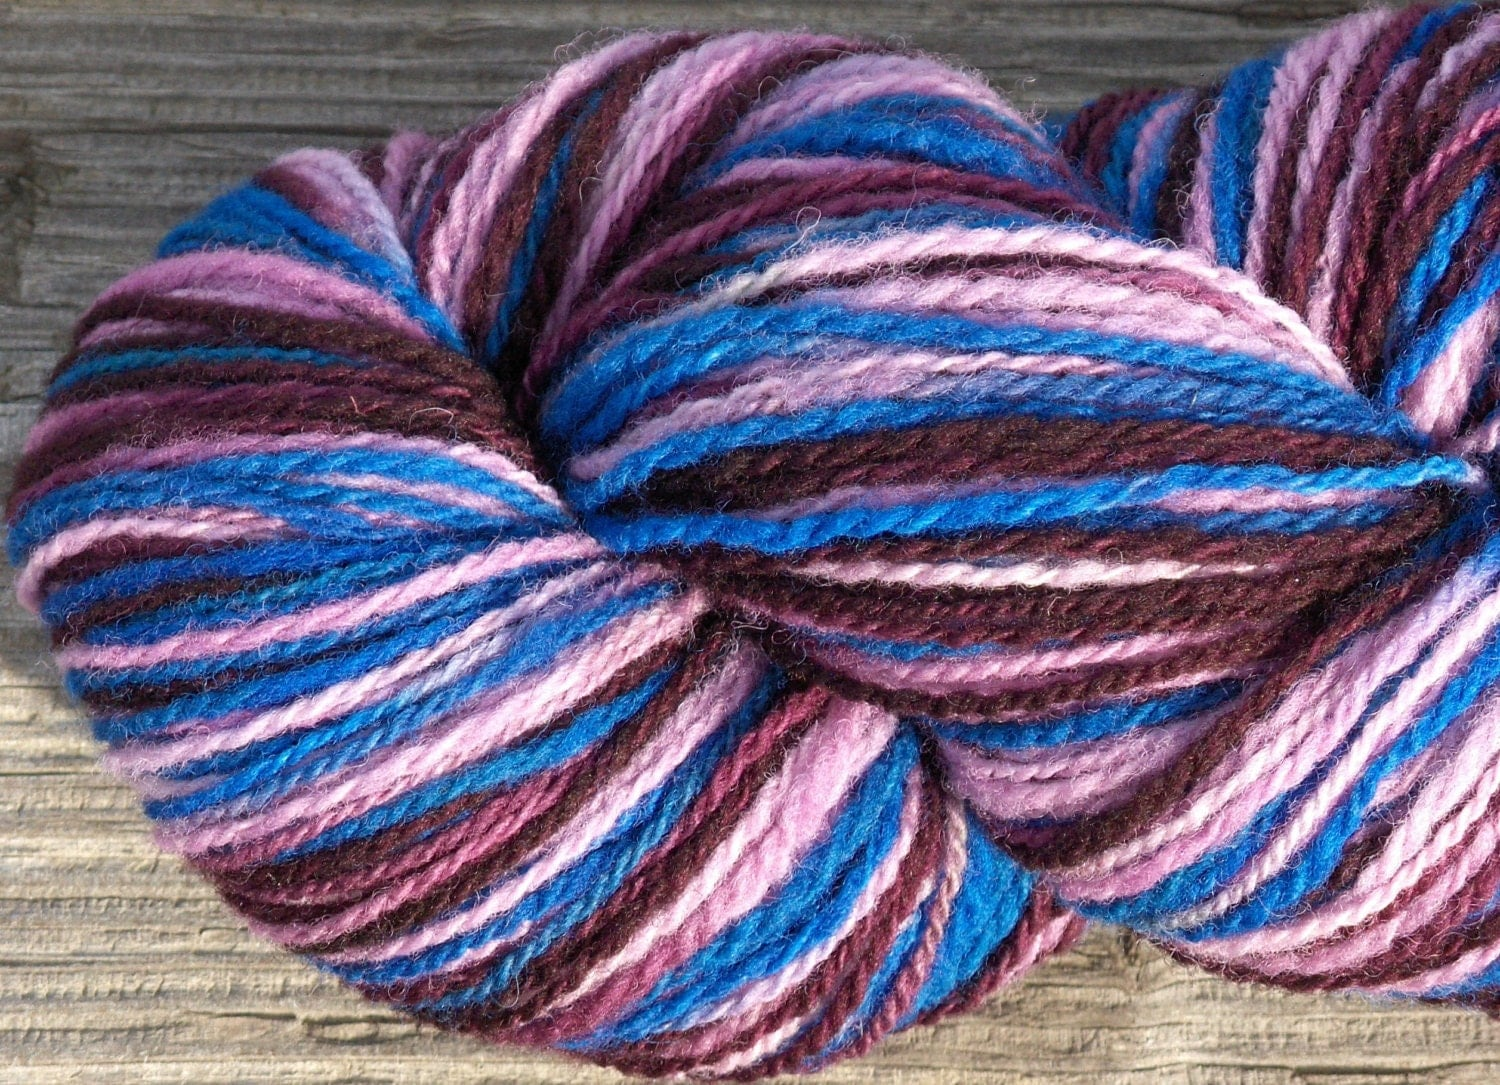 Worsted Weight Yarn : Worsted Weight Variegated Wool Yarn. Hand by PromisedLandFibers